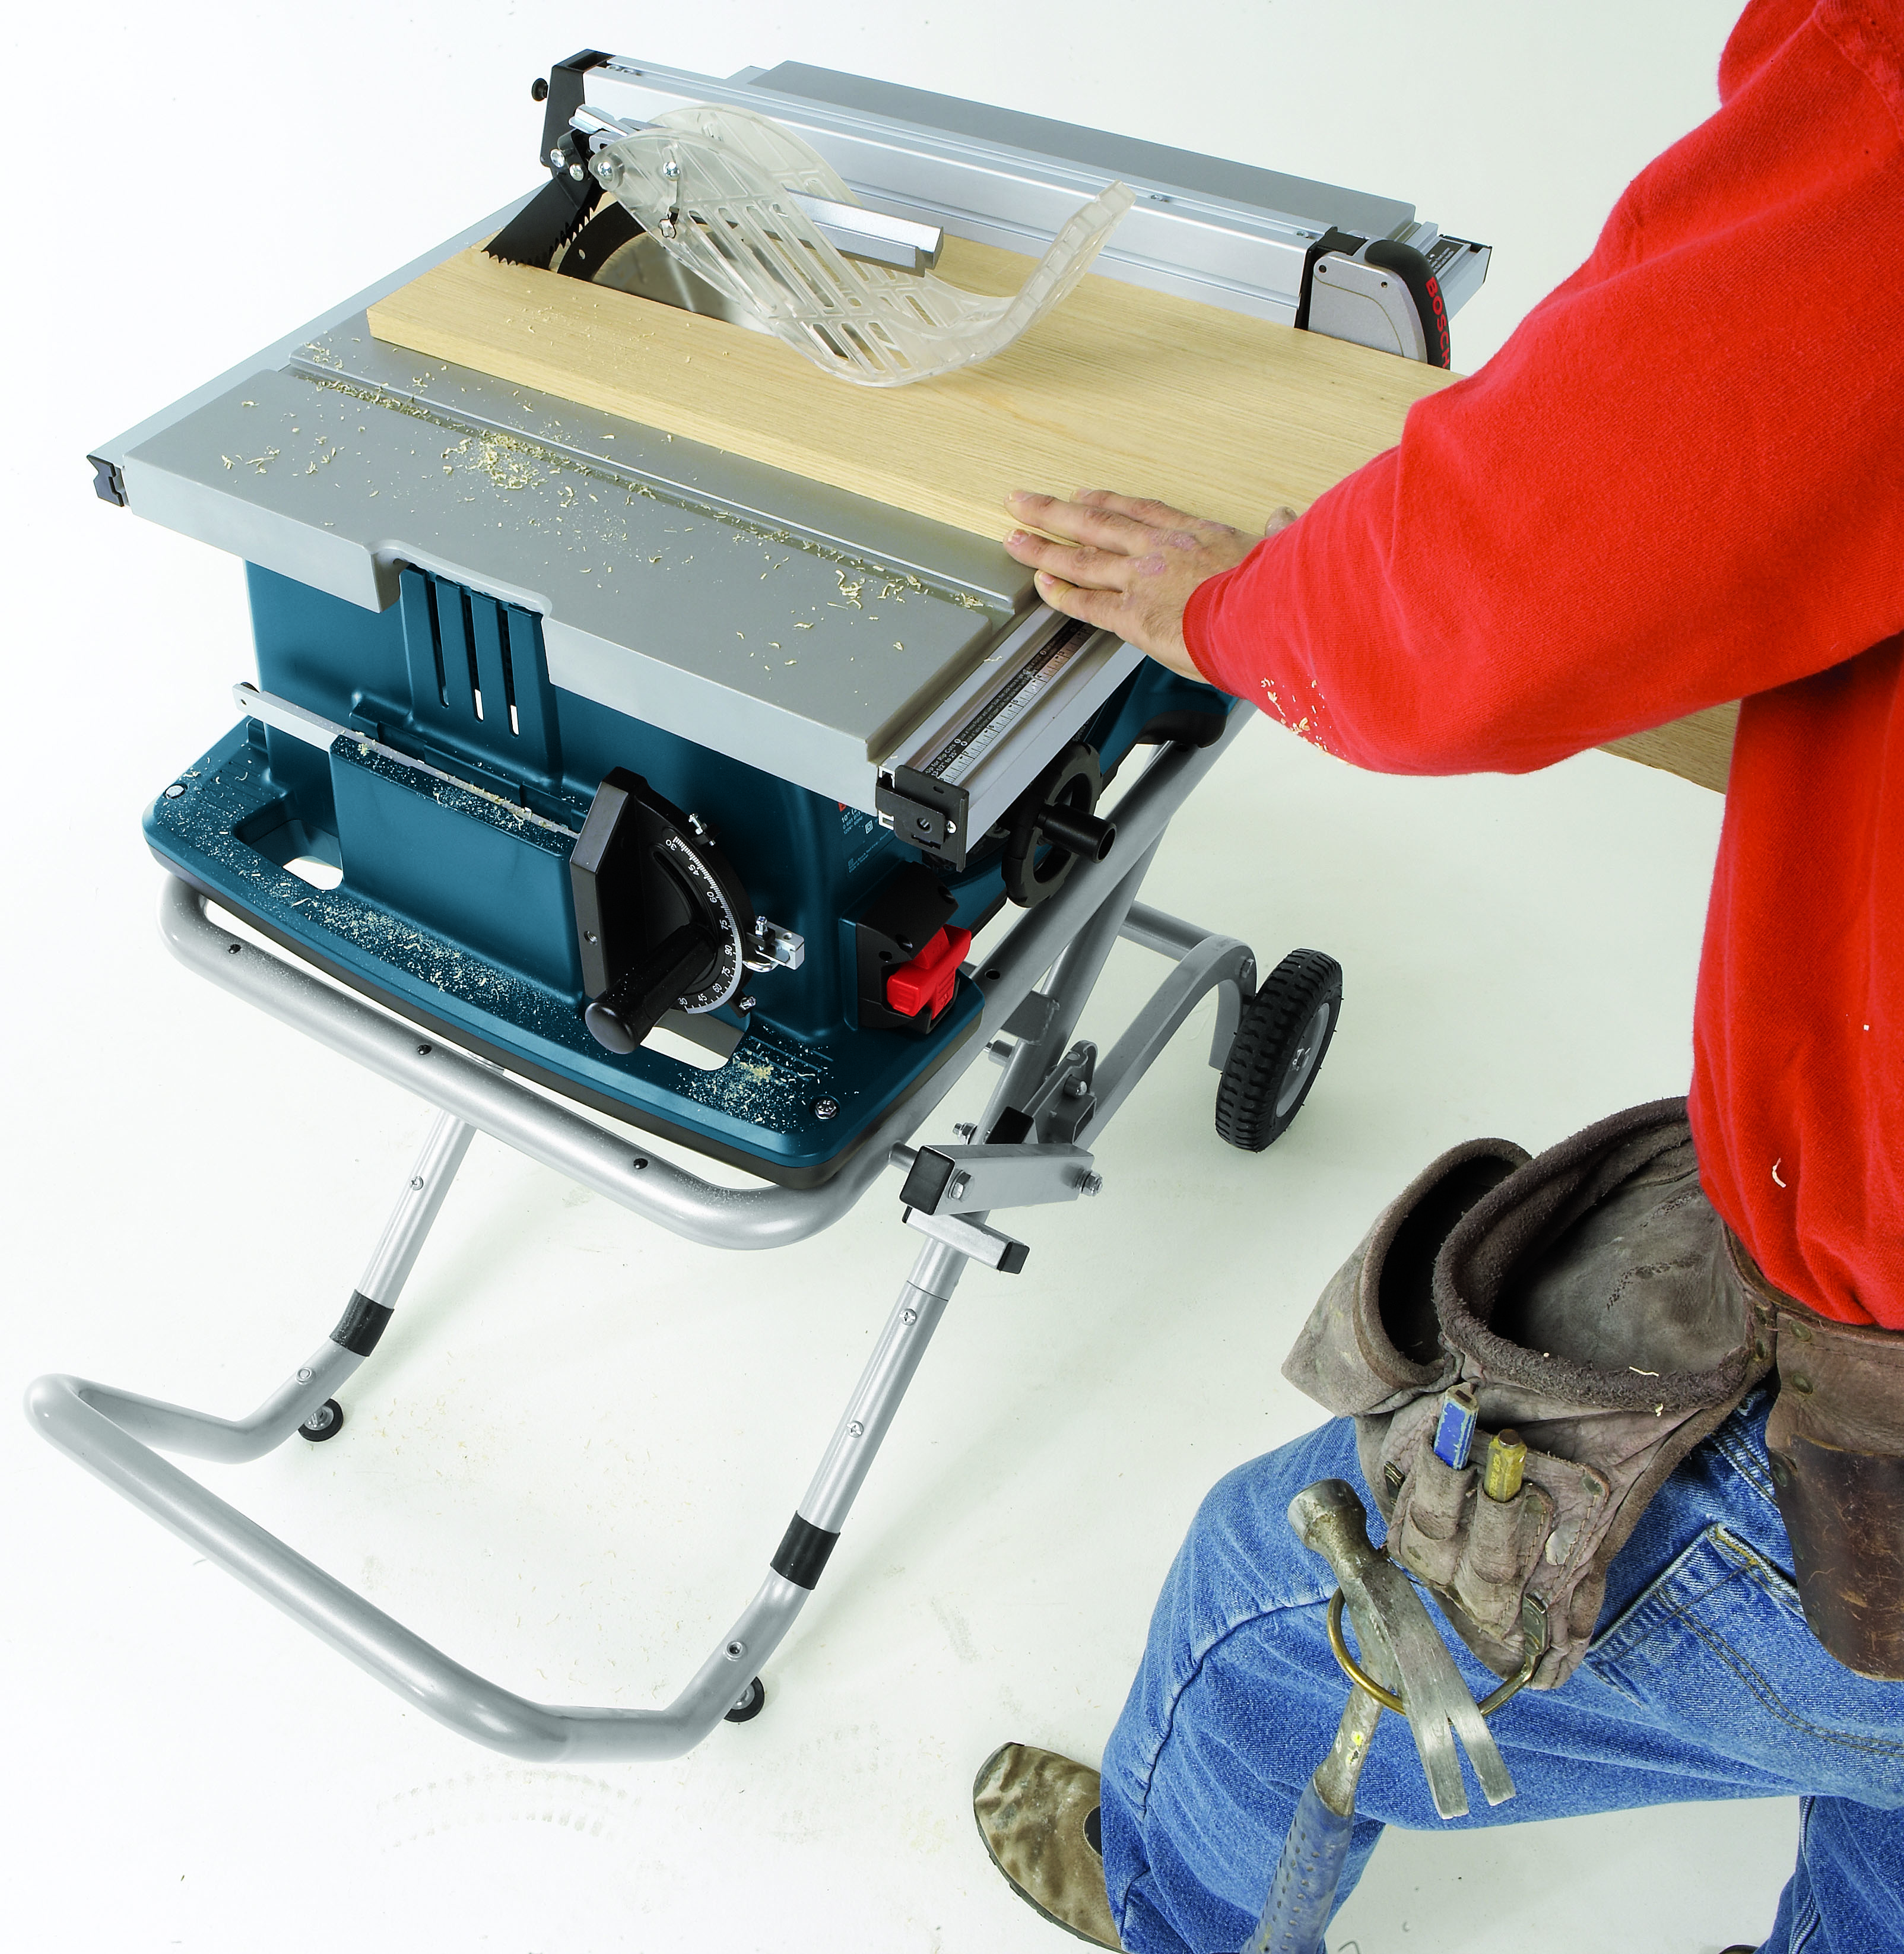 4100 09 10 In Worksite Table Saw With Gravity Rise